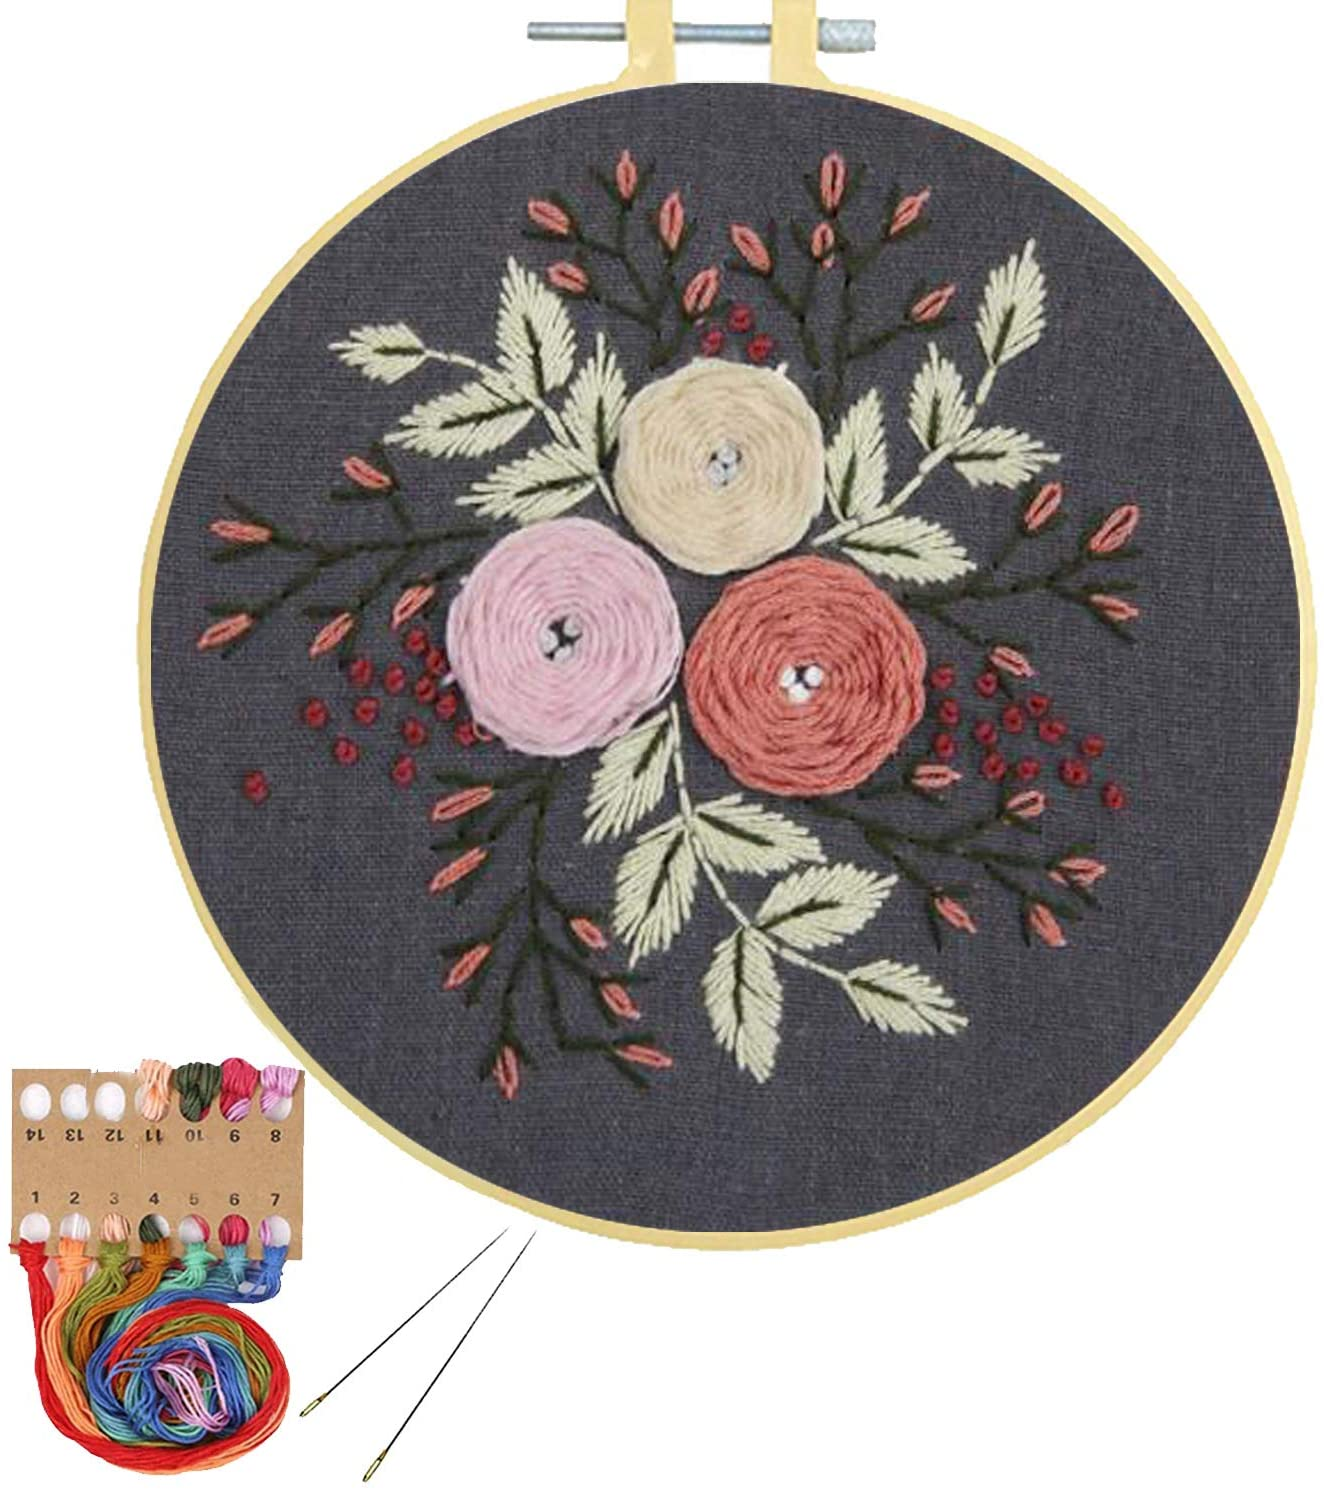 Embroidery Kit with Pattern for Beginners Cross Stitch Kit, Pinkol Stamped Starters Kit Needlepoint Adults Kids Embroidery Hoops Printed Cloth Thread